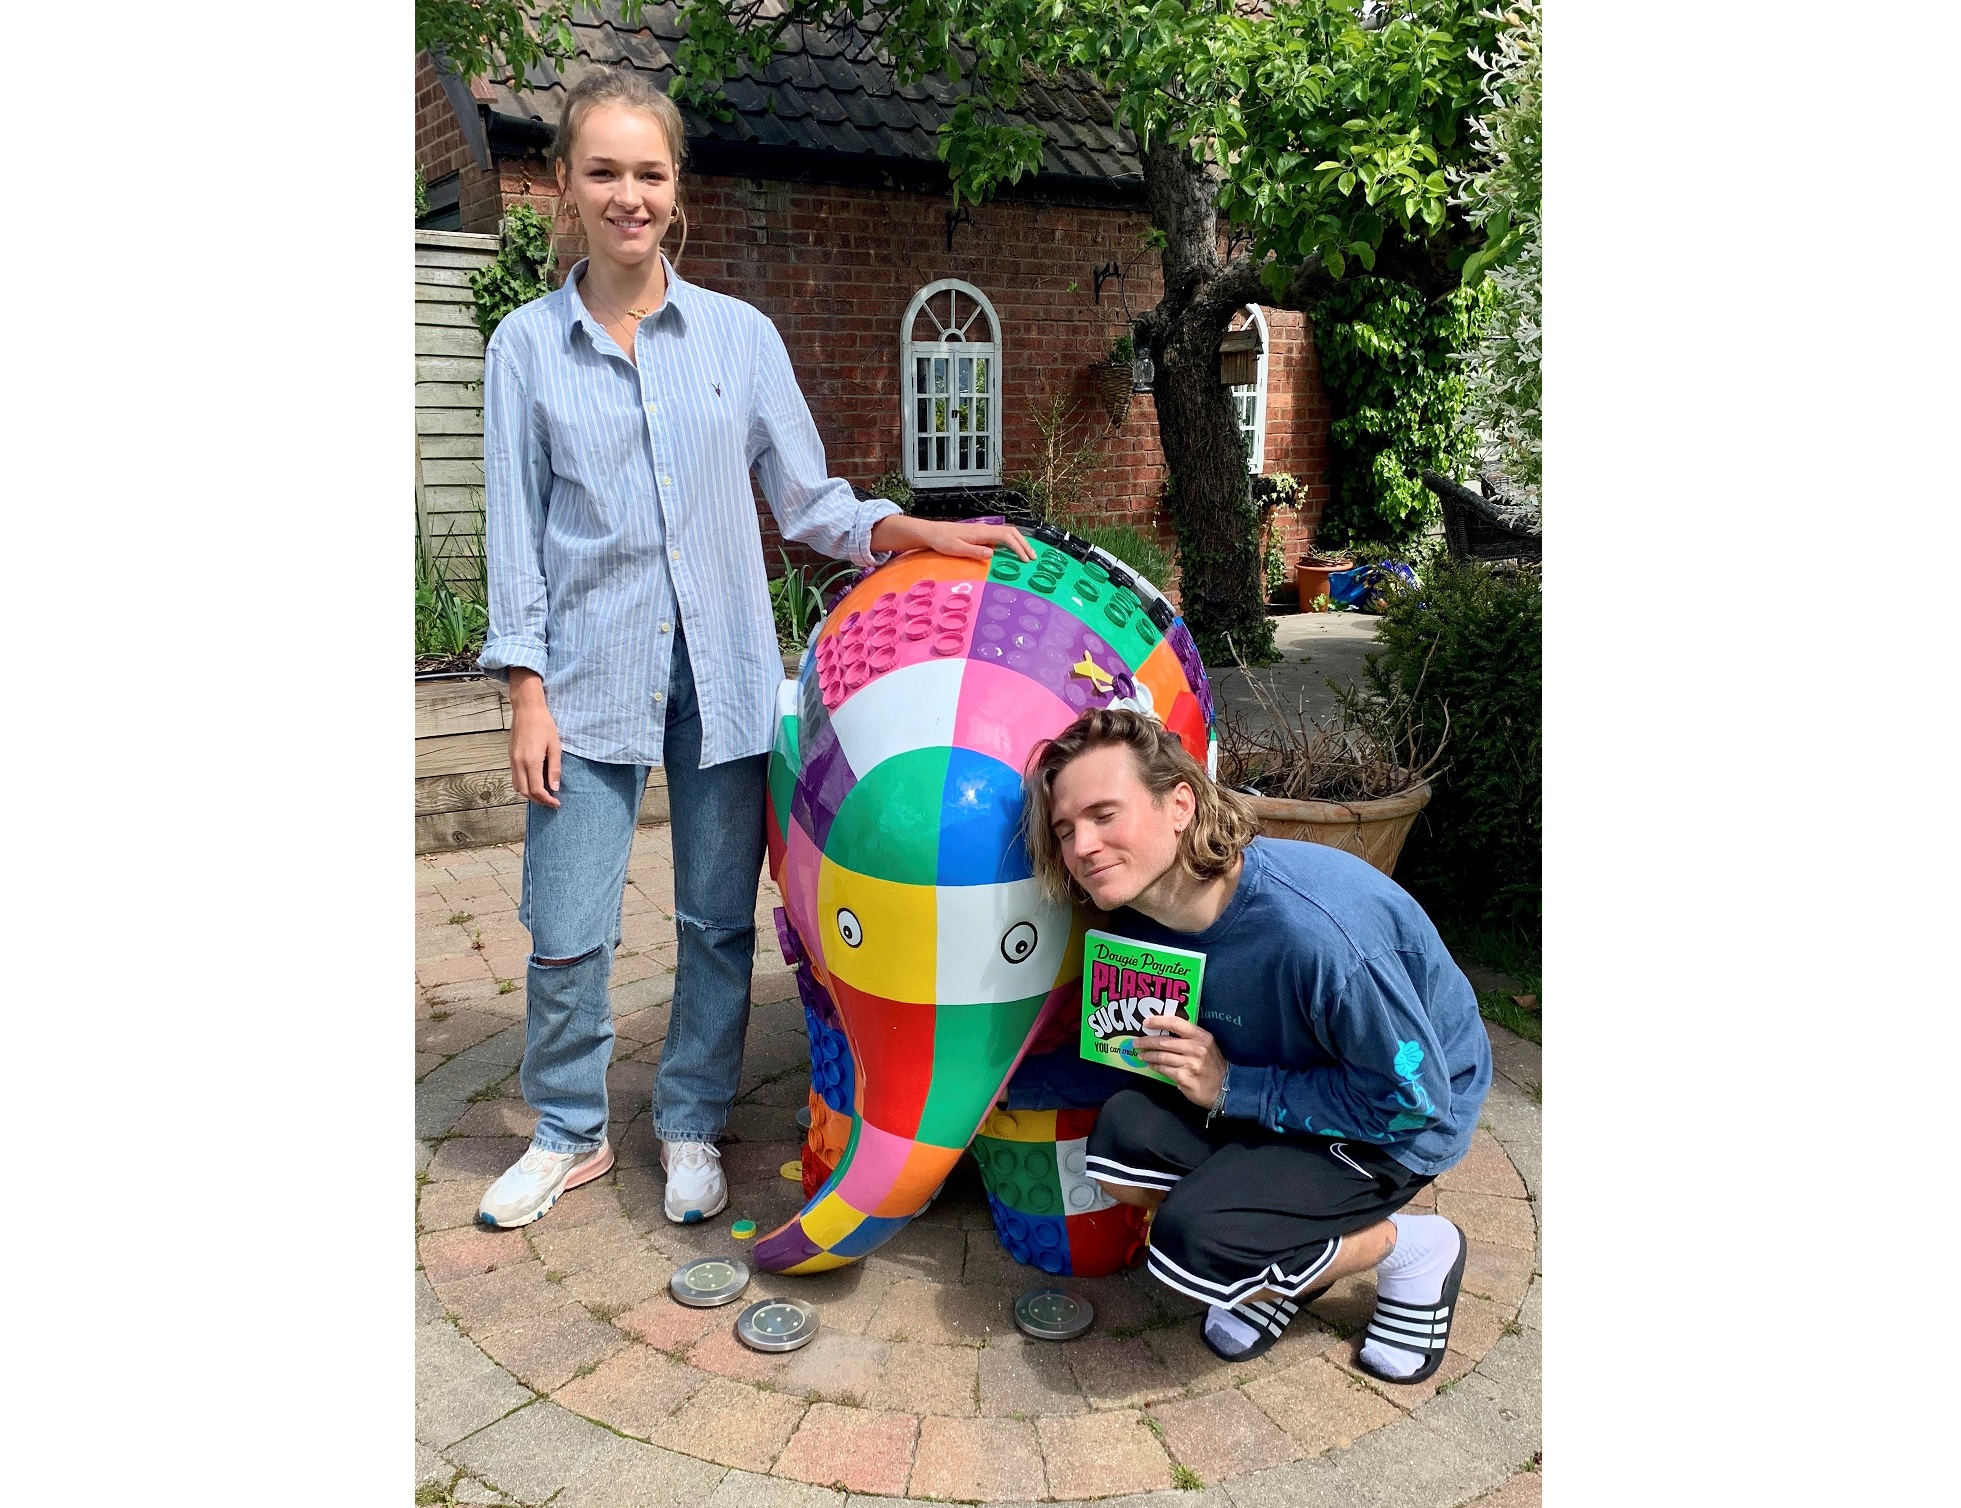 Elephant statues from Ipswich art trail find new homes in support of hospice